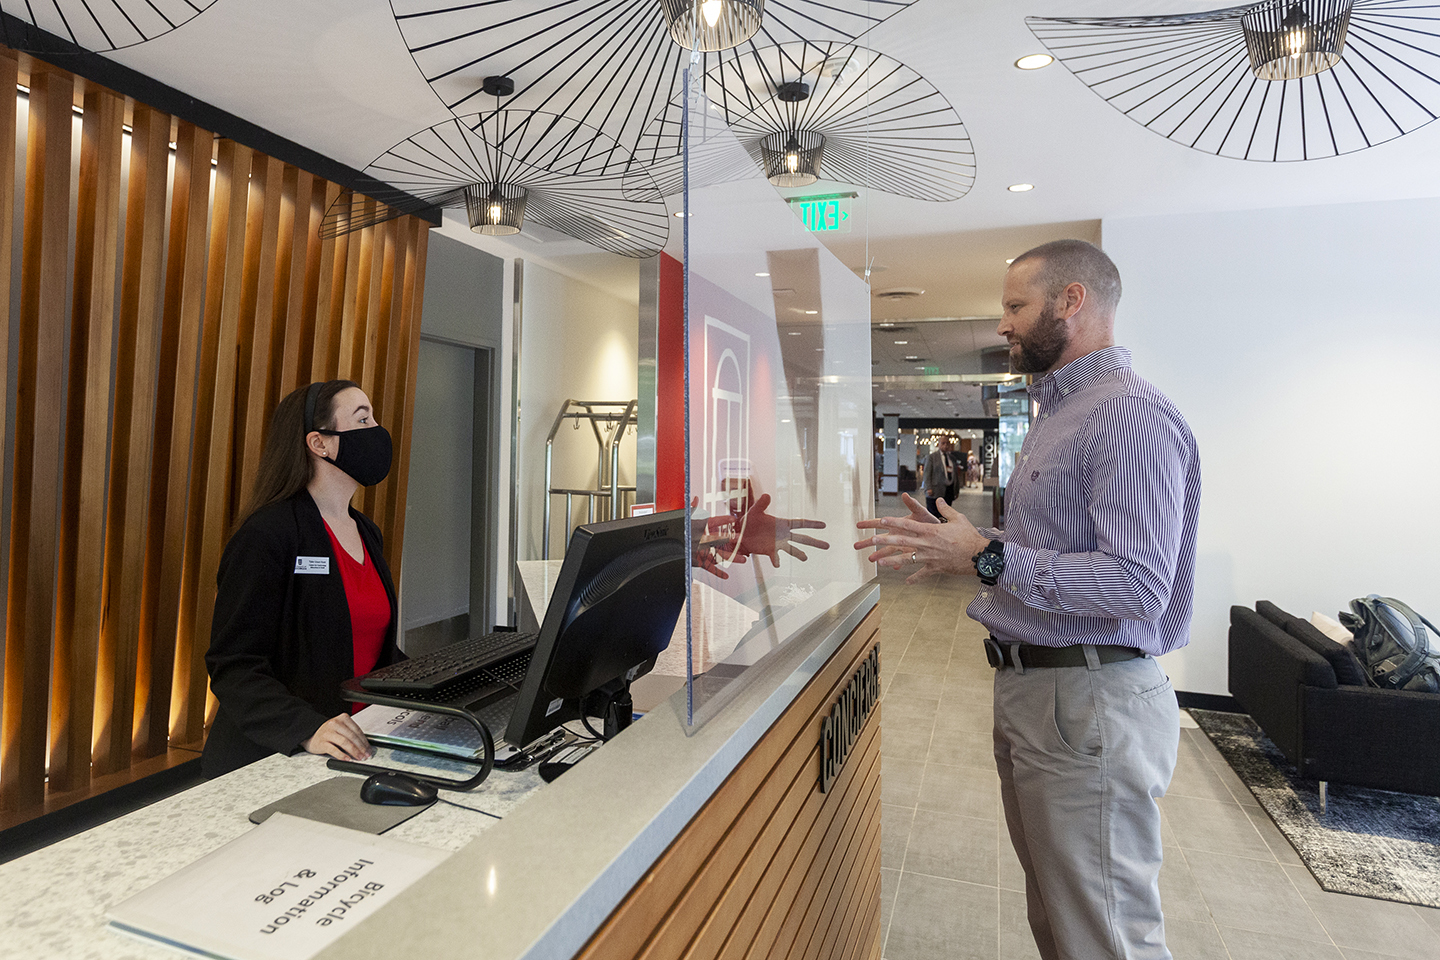 Taylor Grace Hunt helps a guest at the concierge desk of the Georgia Center.